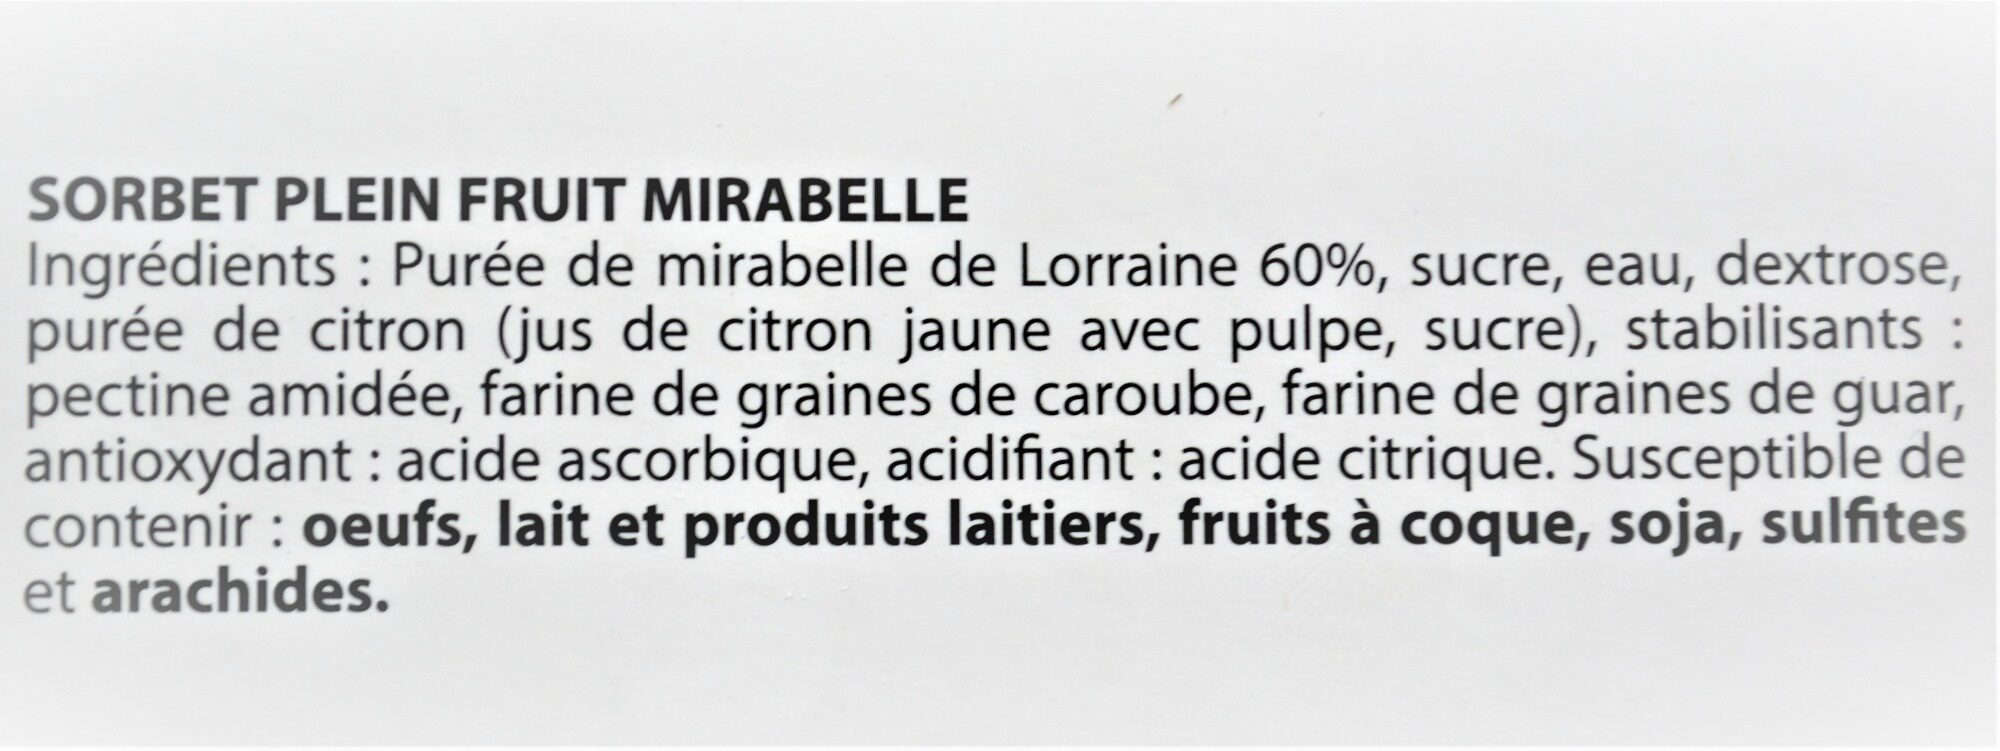 Sorbet plein fruit MIRABELLE, 60% de fruit - Ingredients